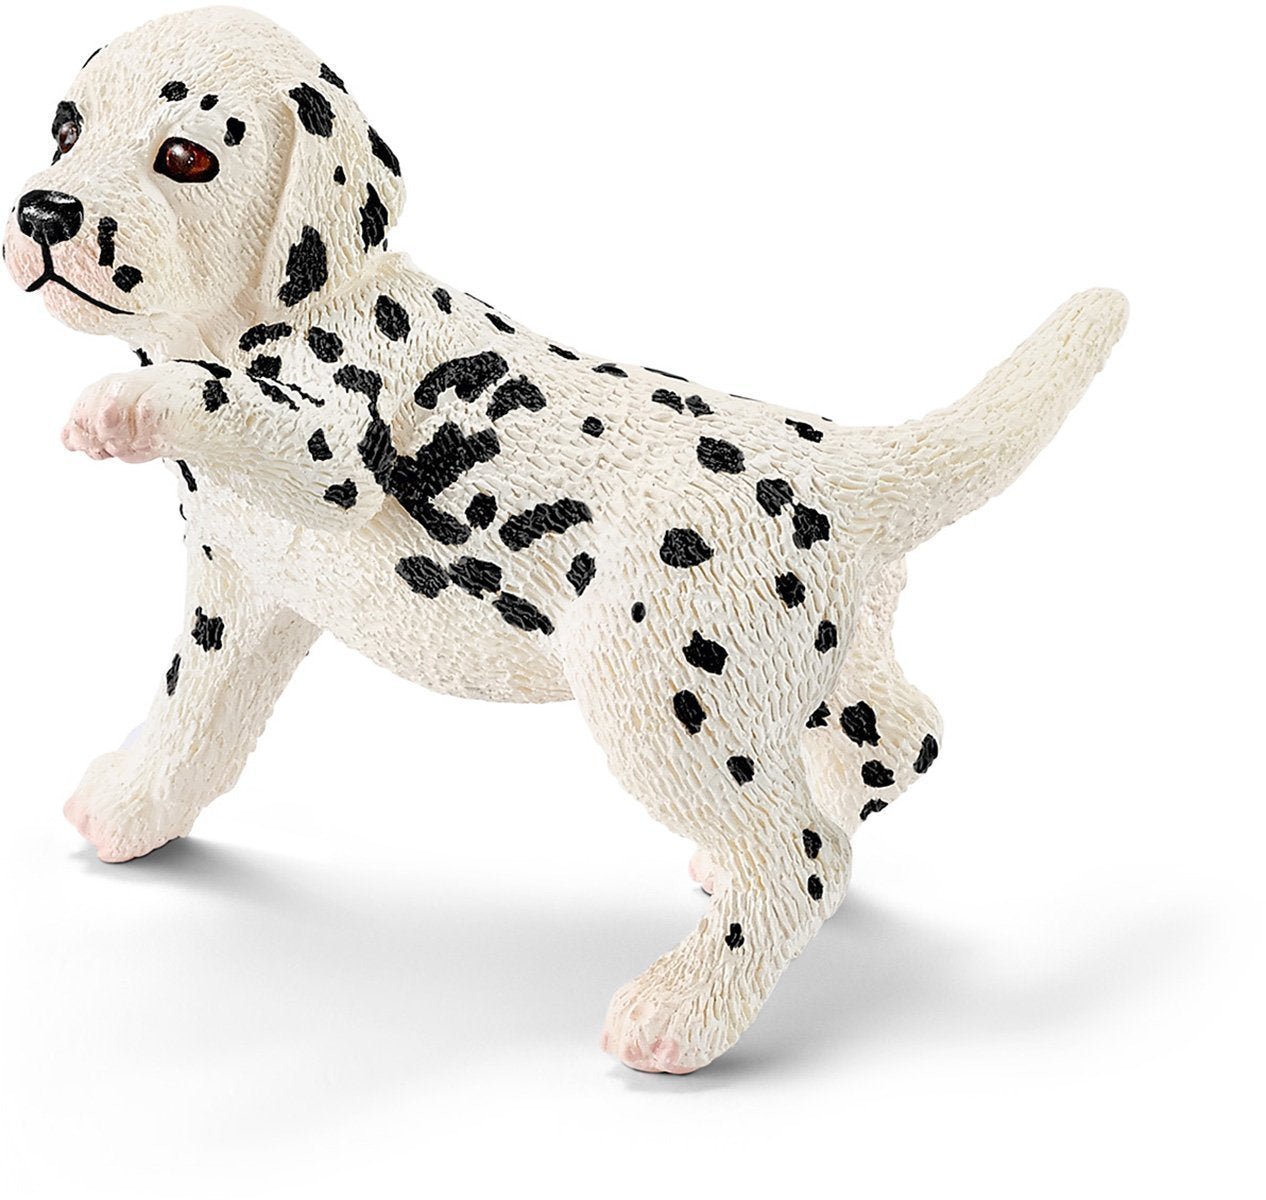 Schleich 16839 Dalmation Puppy